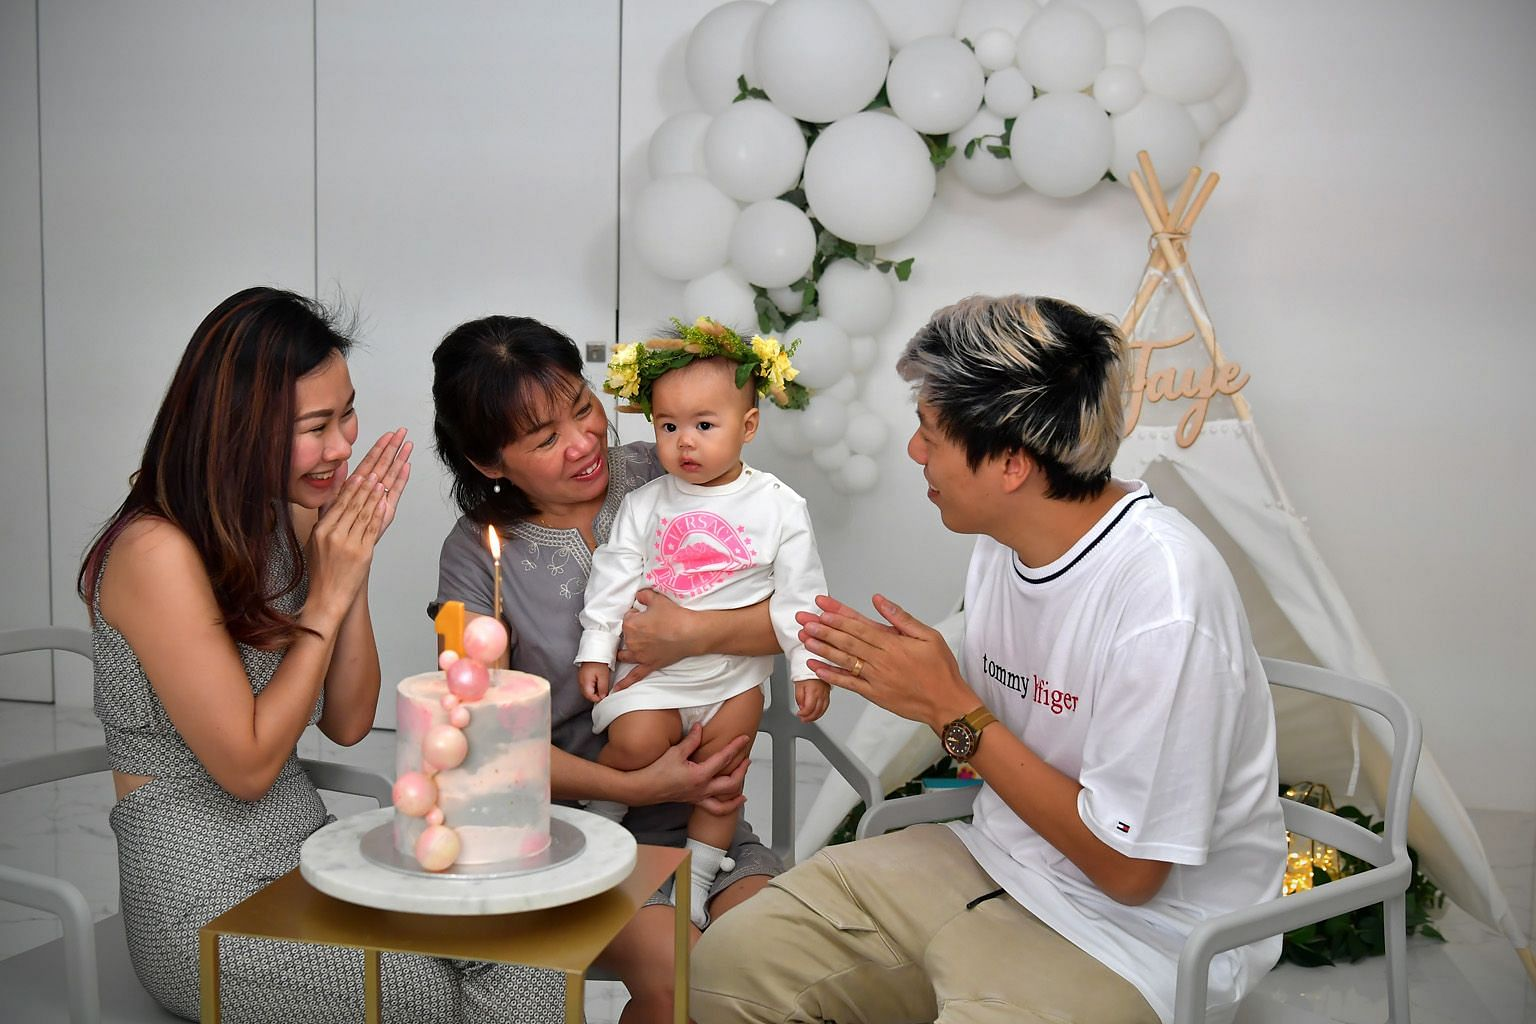 Above: Madam Lim Bee Wah, 56, quit her job of 14 years last year so her daughter Tam Xiang Ying, 32, seen here with husband Kelvin Chua, 36, and daughter, Faye, would not have to give up her job to care for the baby. ST PHOTO: NG SOR LUAN